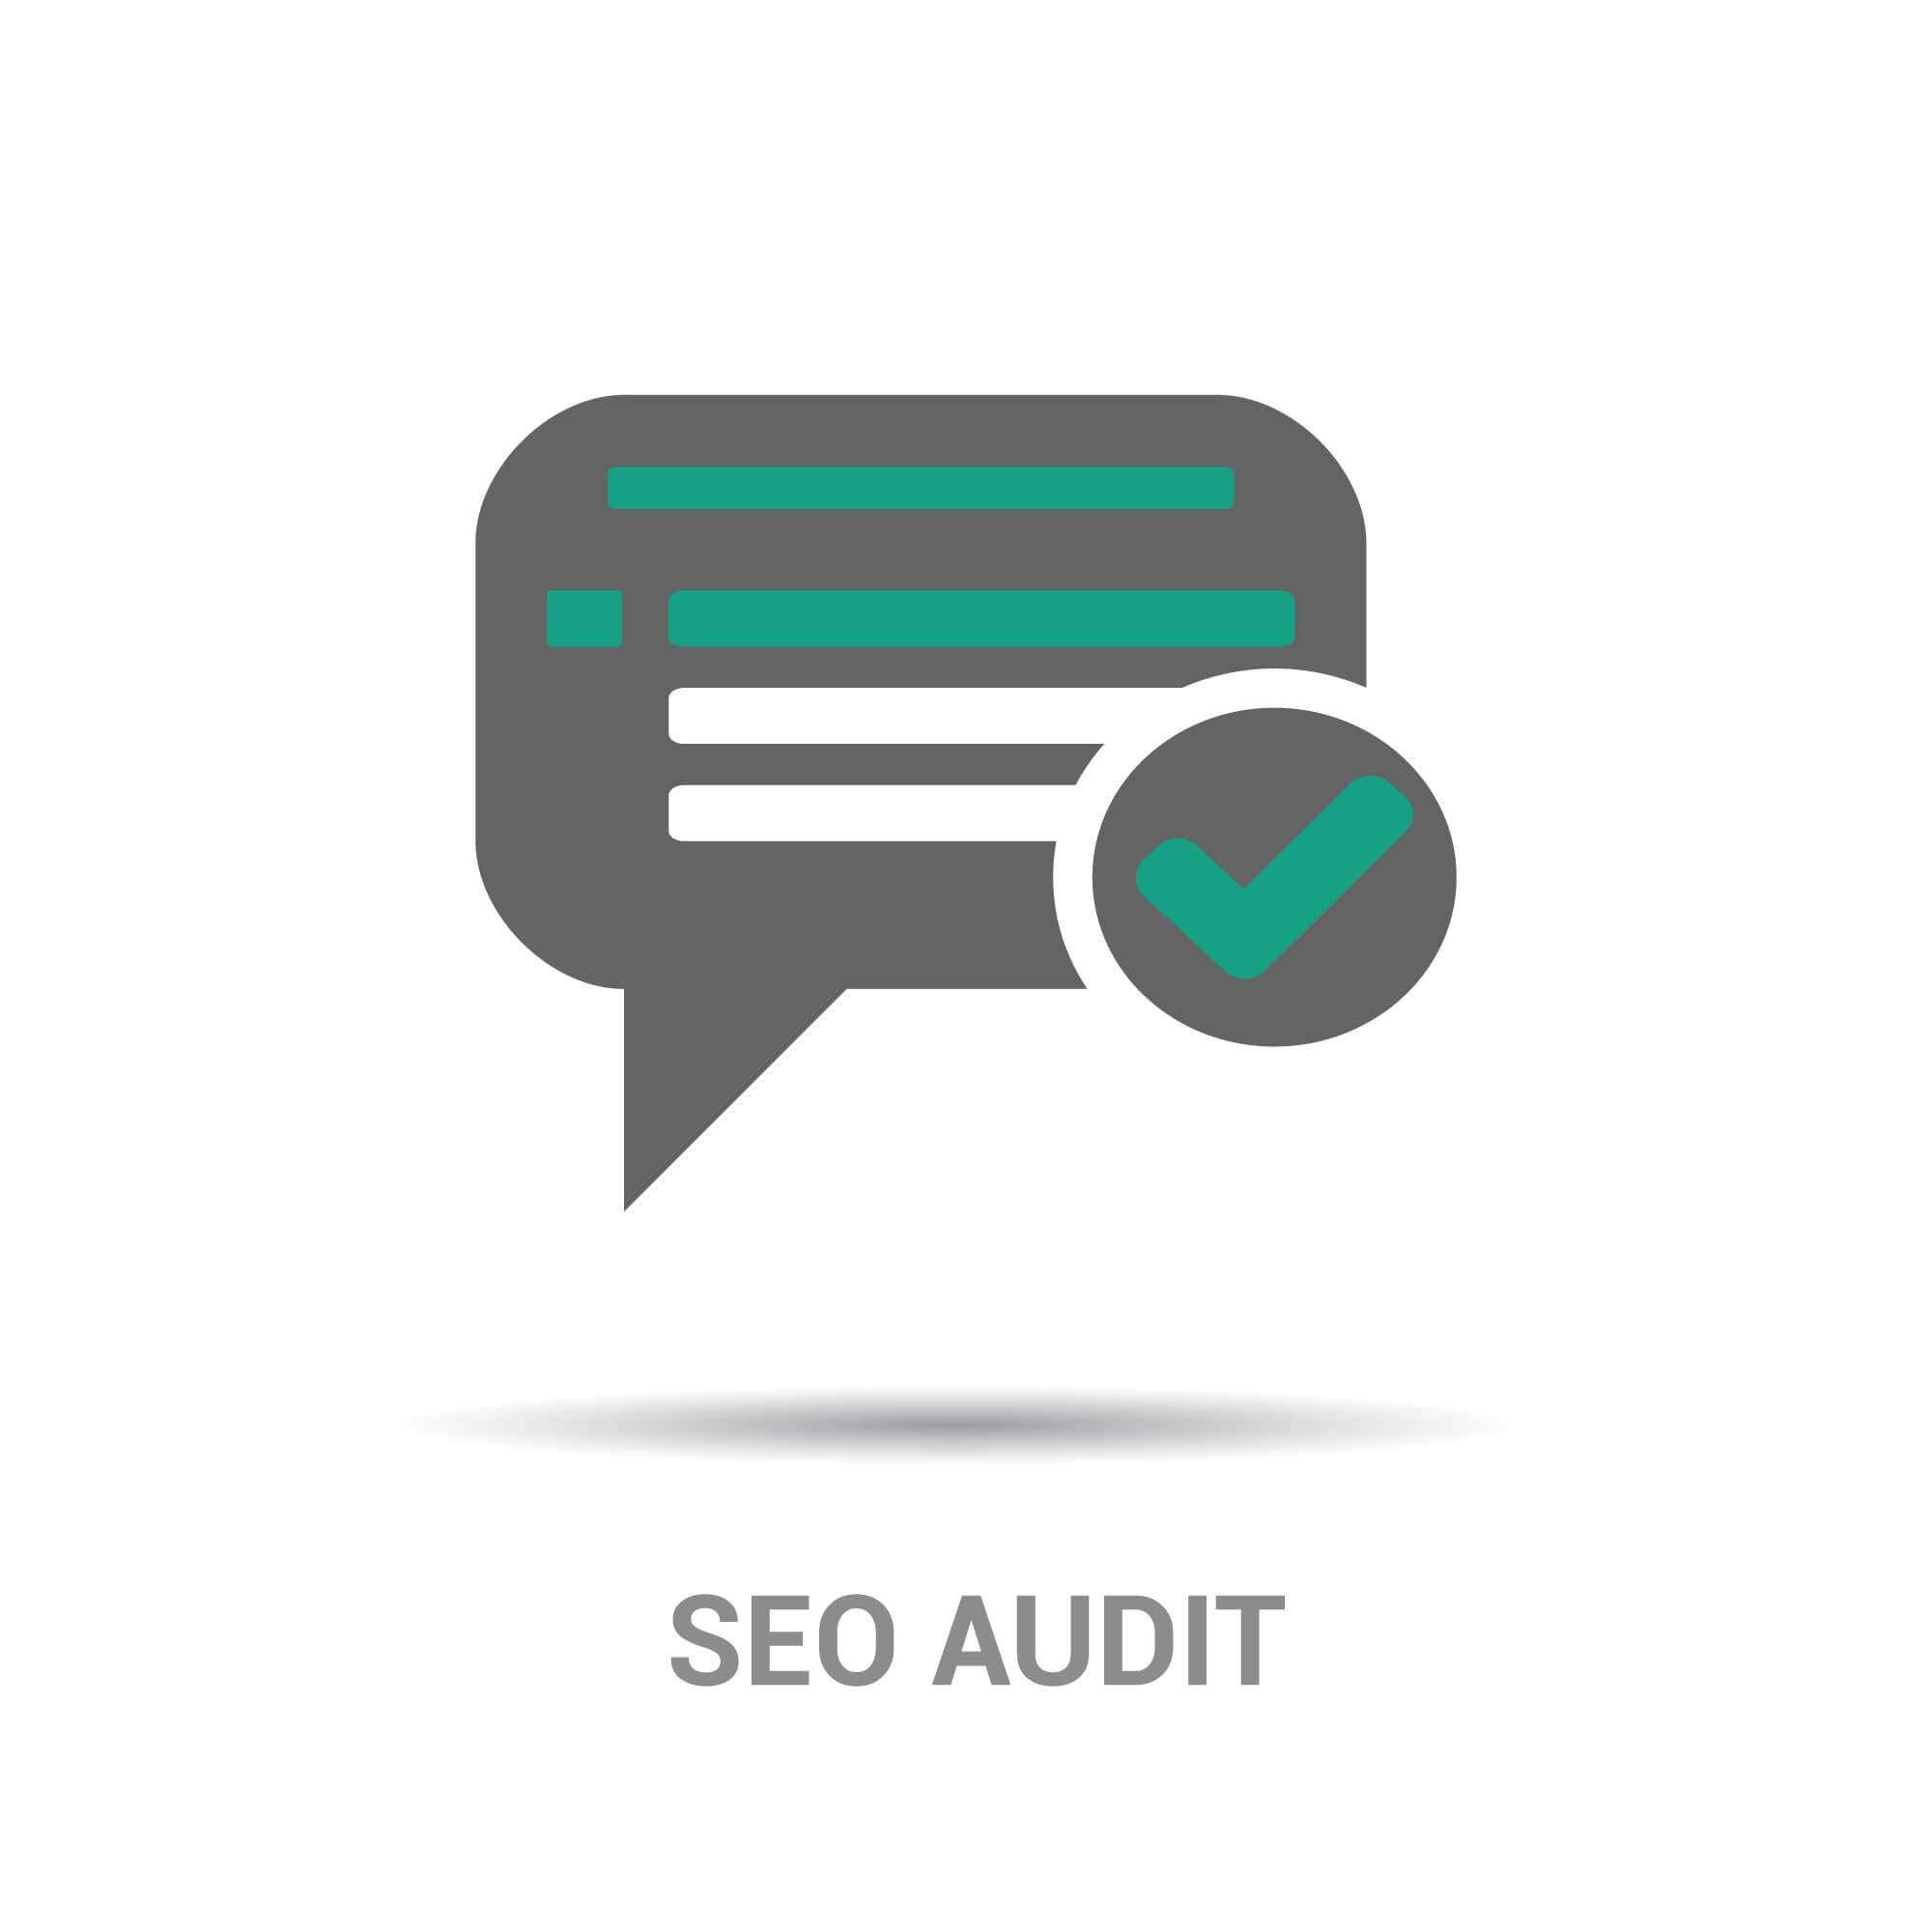 ecommerce seo audit